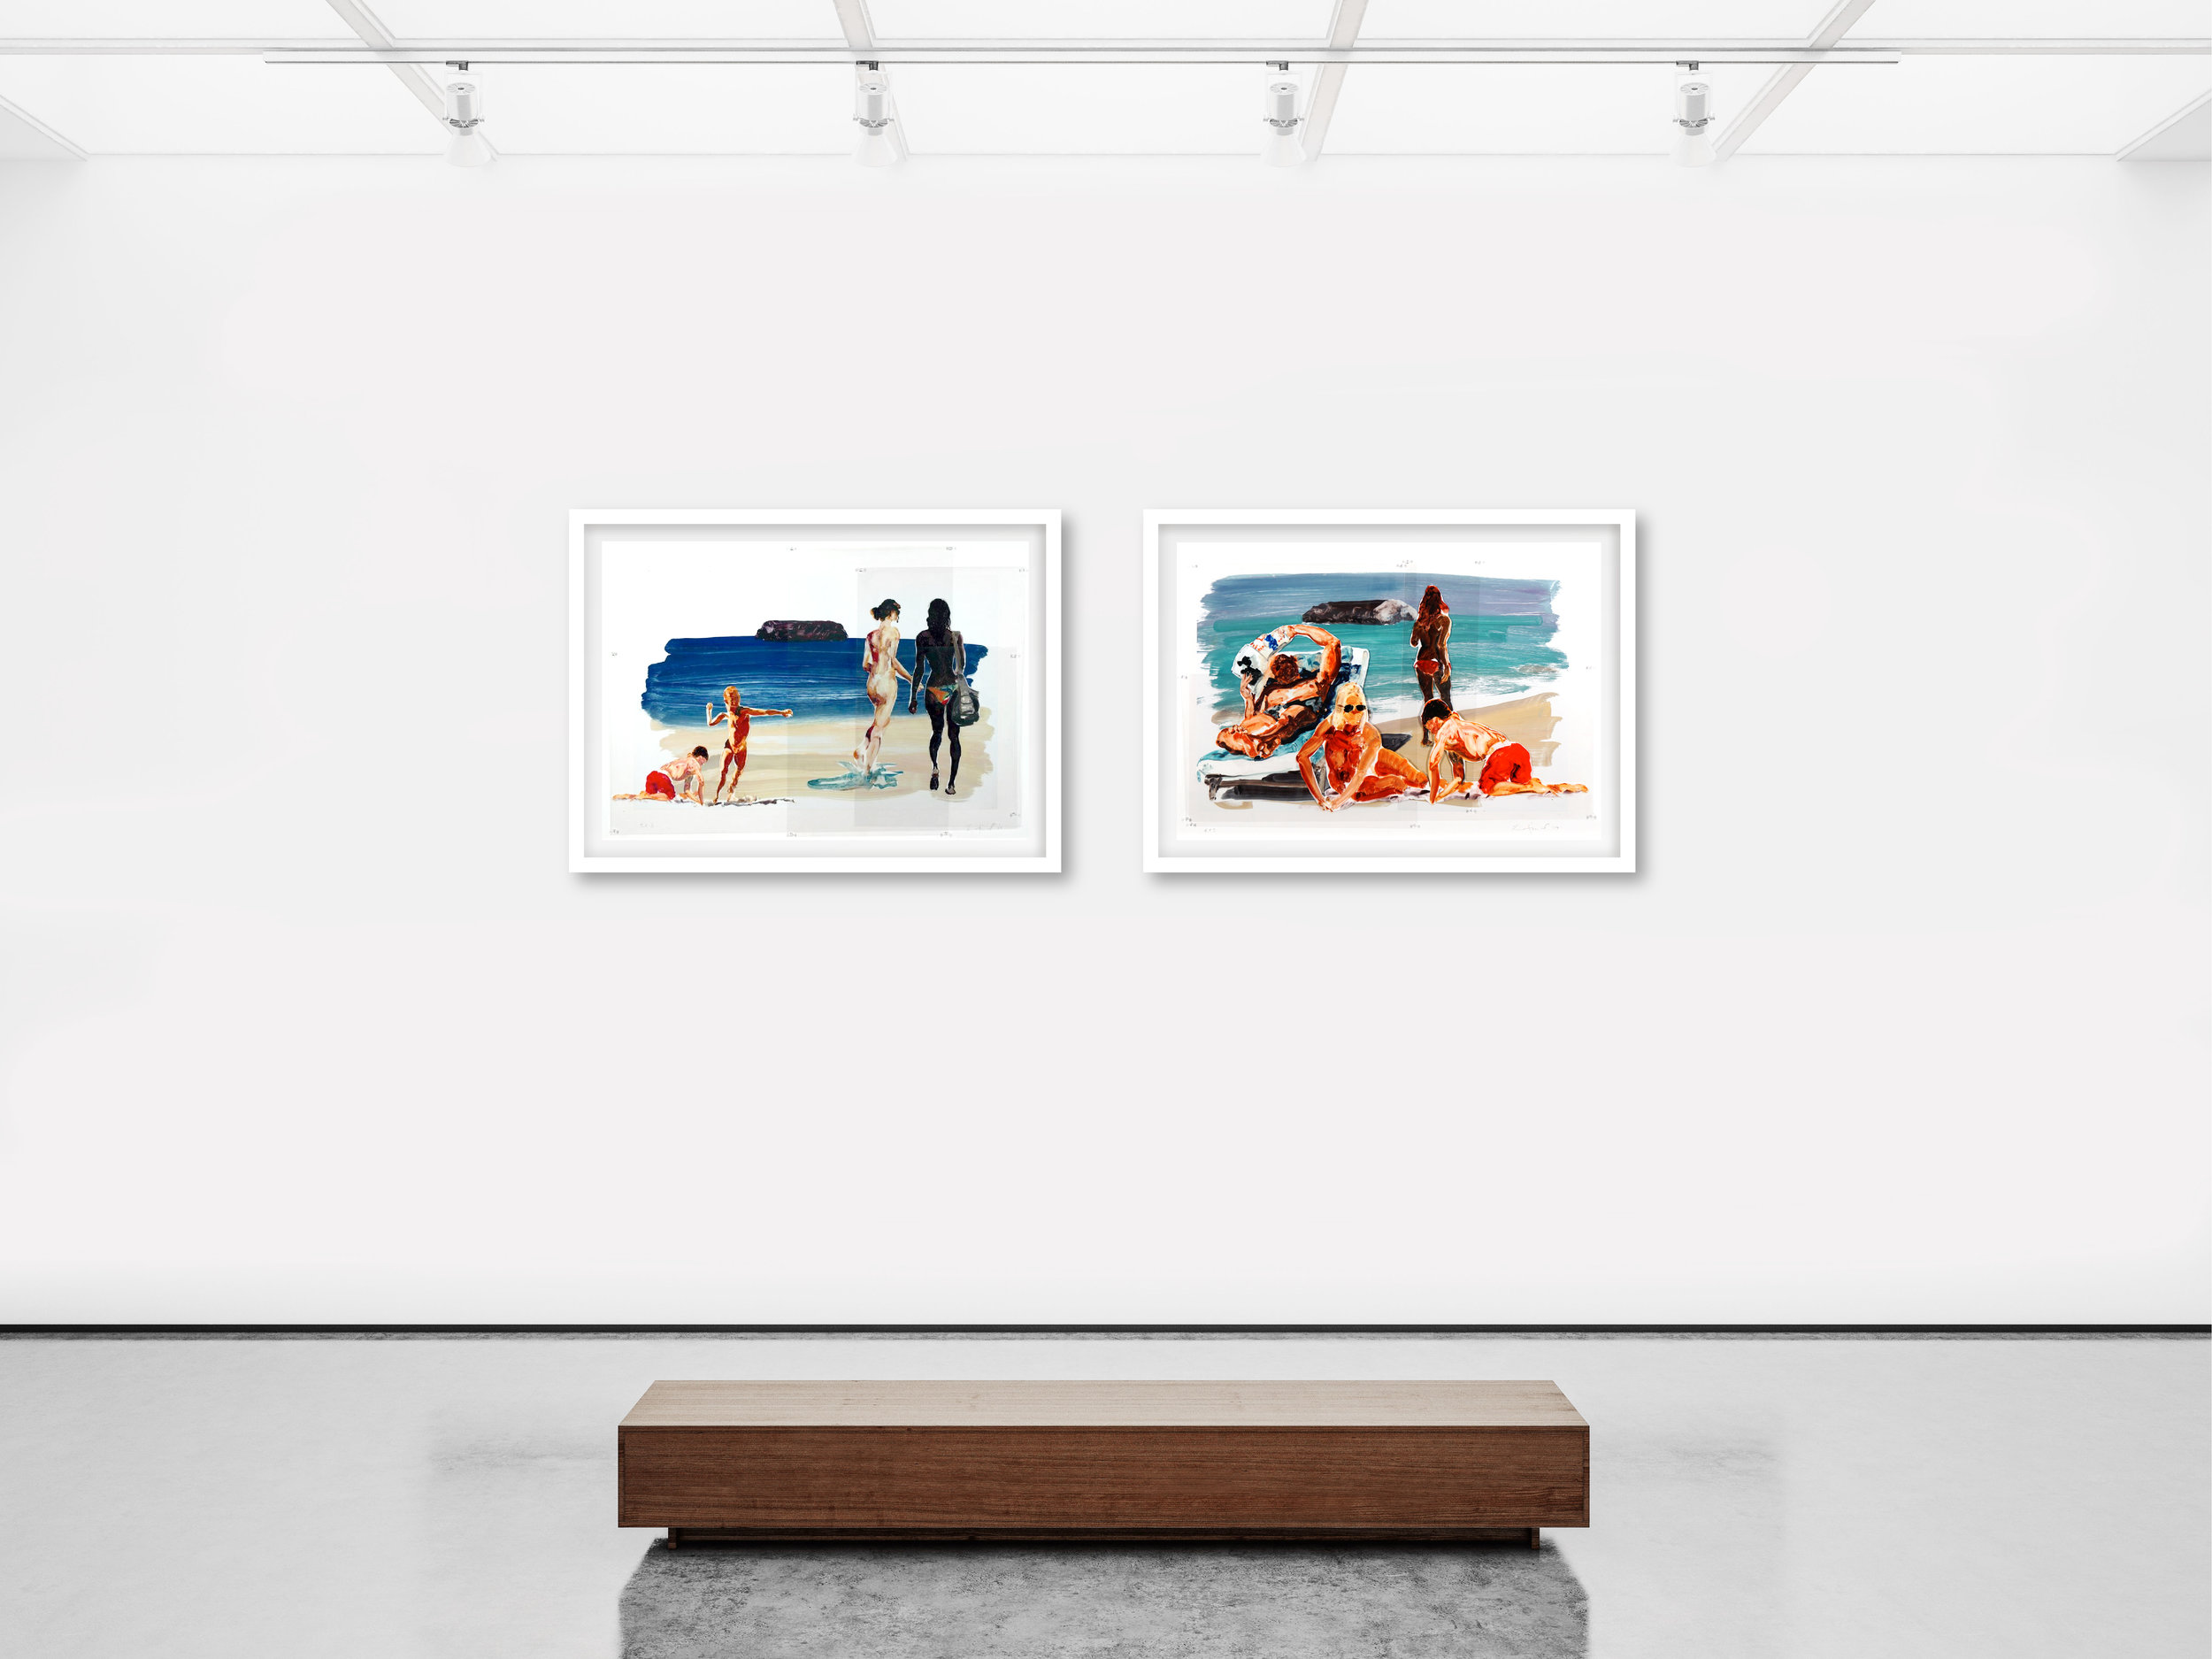 """(L)  Untitled (Girls Walking Boy Throwing Stone) , 2017, 34.5"""" x 48.5"""", (R)  Untitled (Family) , 2017, 34.5"""" x 48.5""""  Sublimation on mylar with pins and digital pigment print on paper, mounted to acid-free board"""